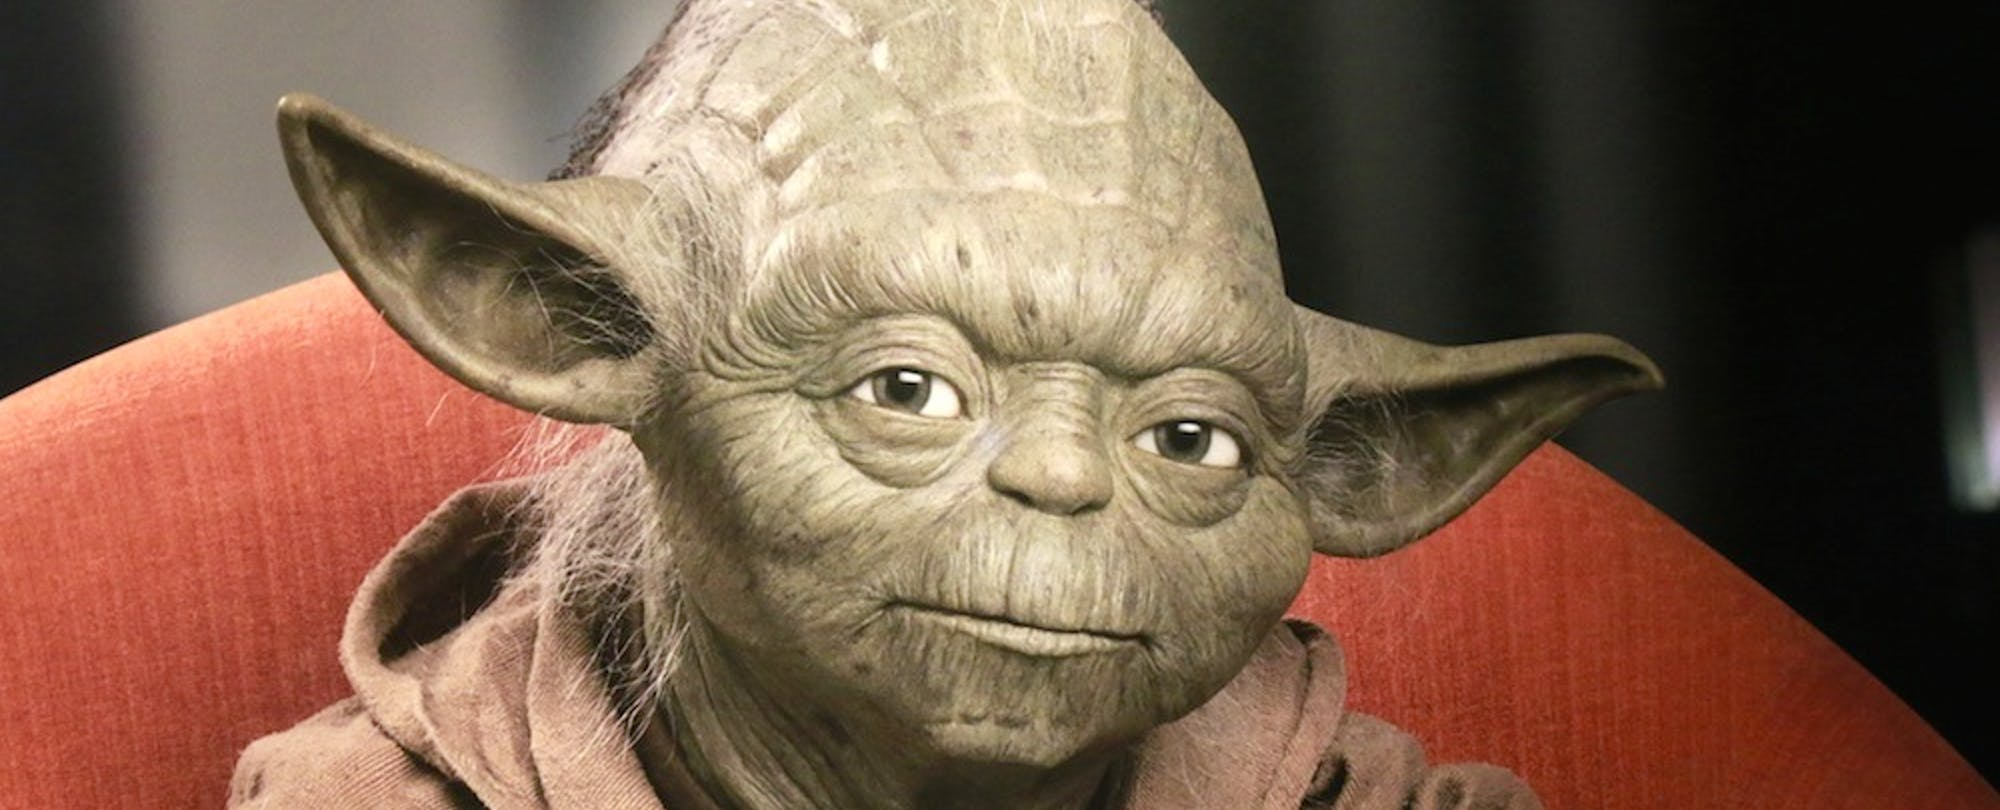 'Find Your Yoda' and Other Advice from Your School's Tech Department